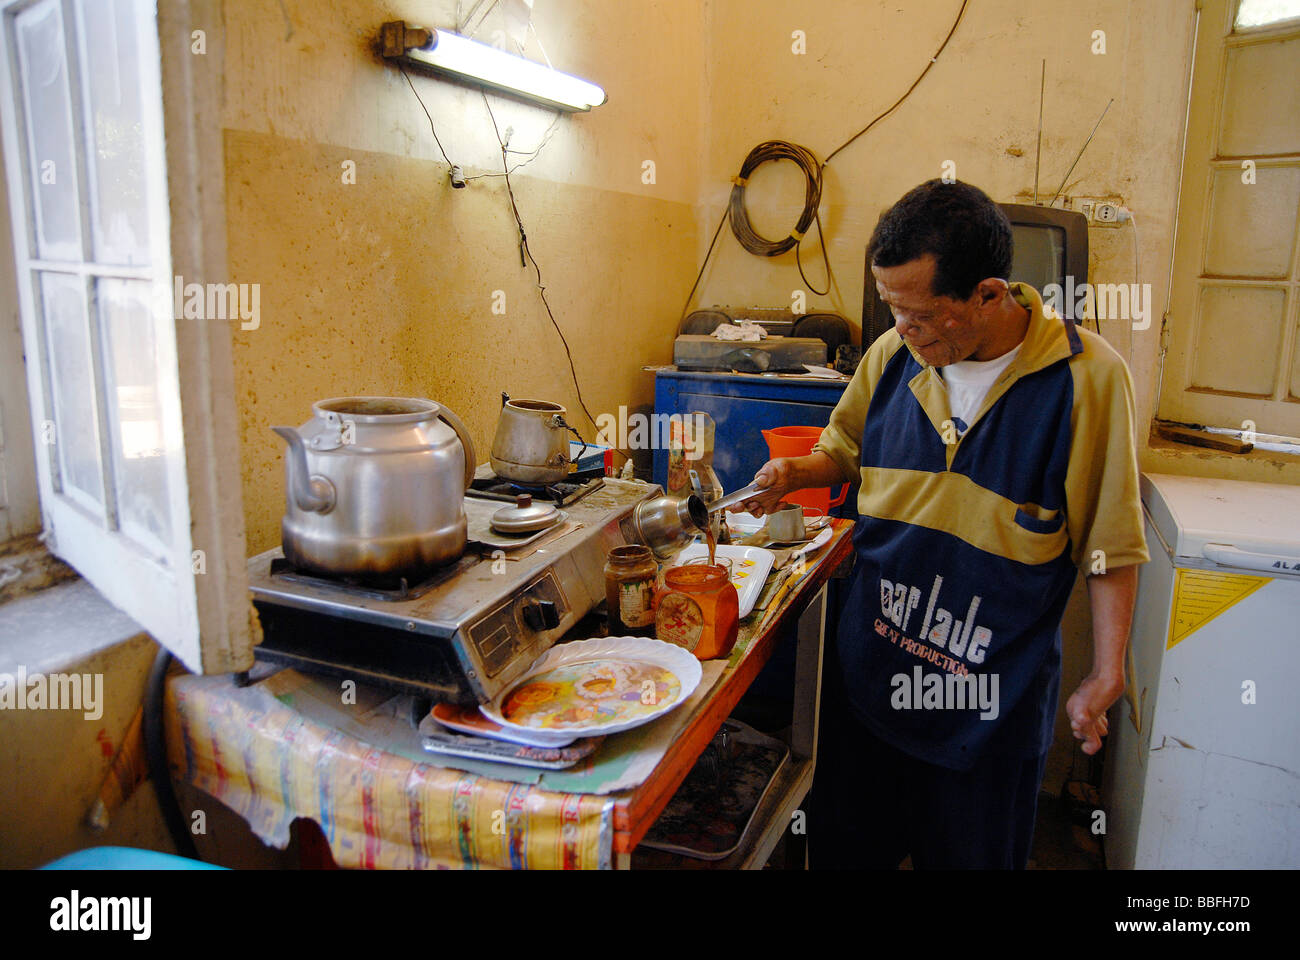 A leprosy patient is running a small cafeteria or coffeshop on the hospital grounds - Stock Image